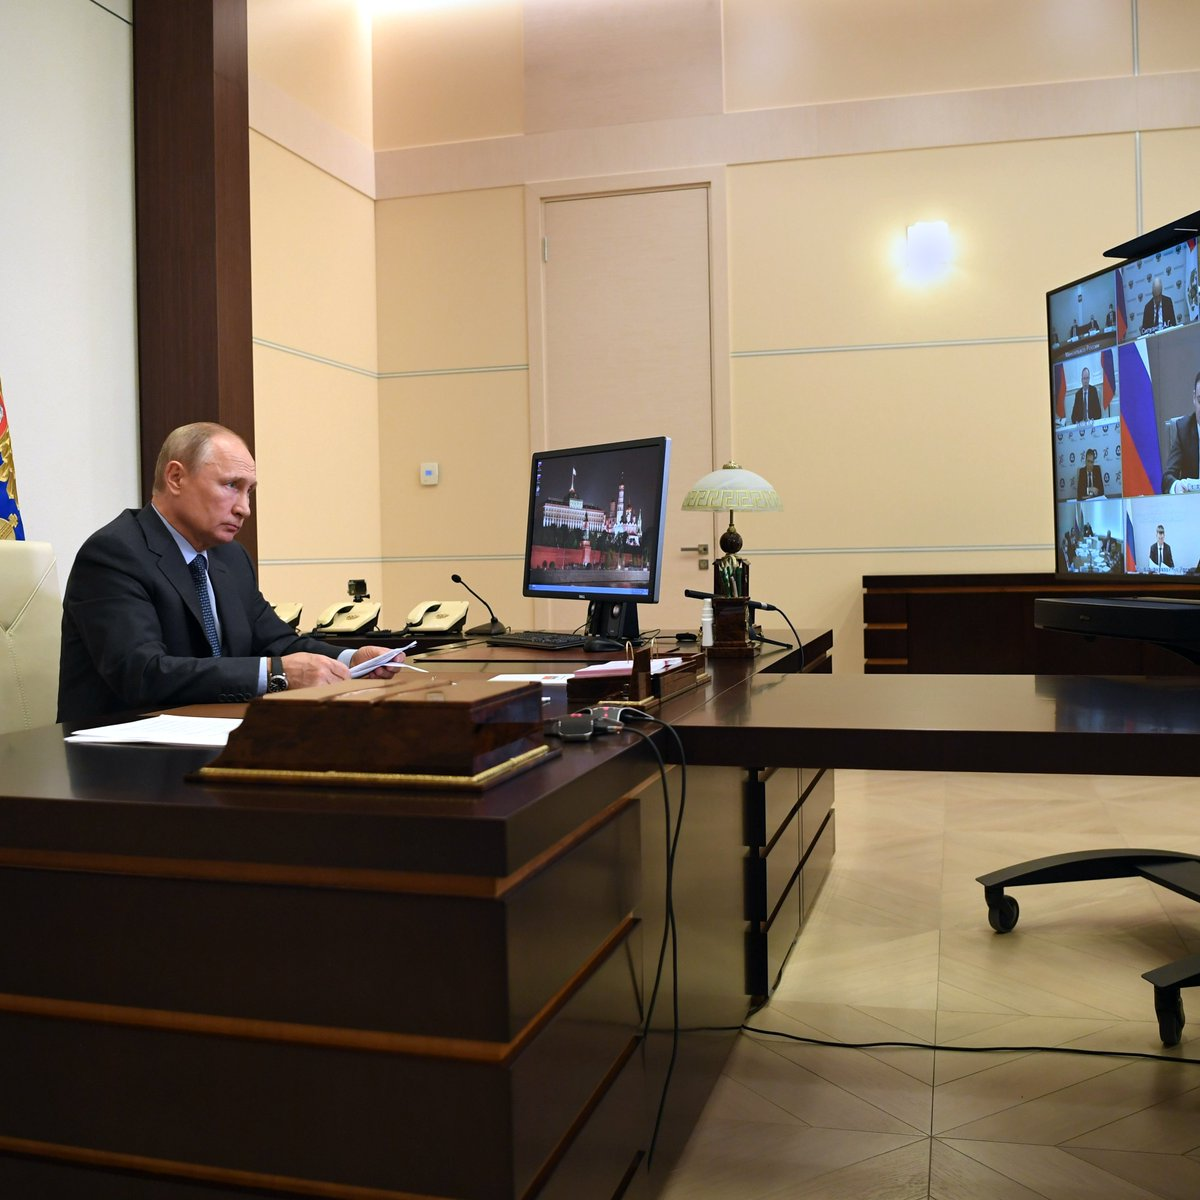 The influence of the coronavirus on agriculture: Vladimir Putin held a videoconference on developments in this sector bit.ly/2WRyj1f